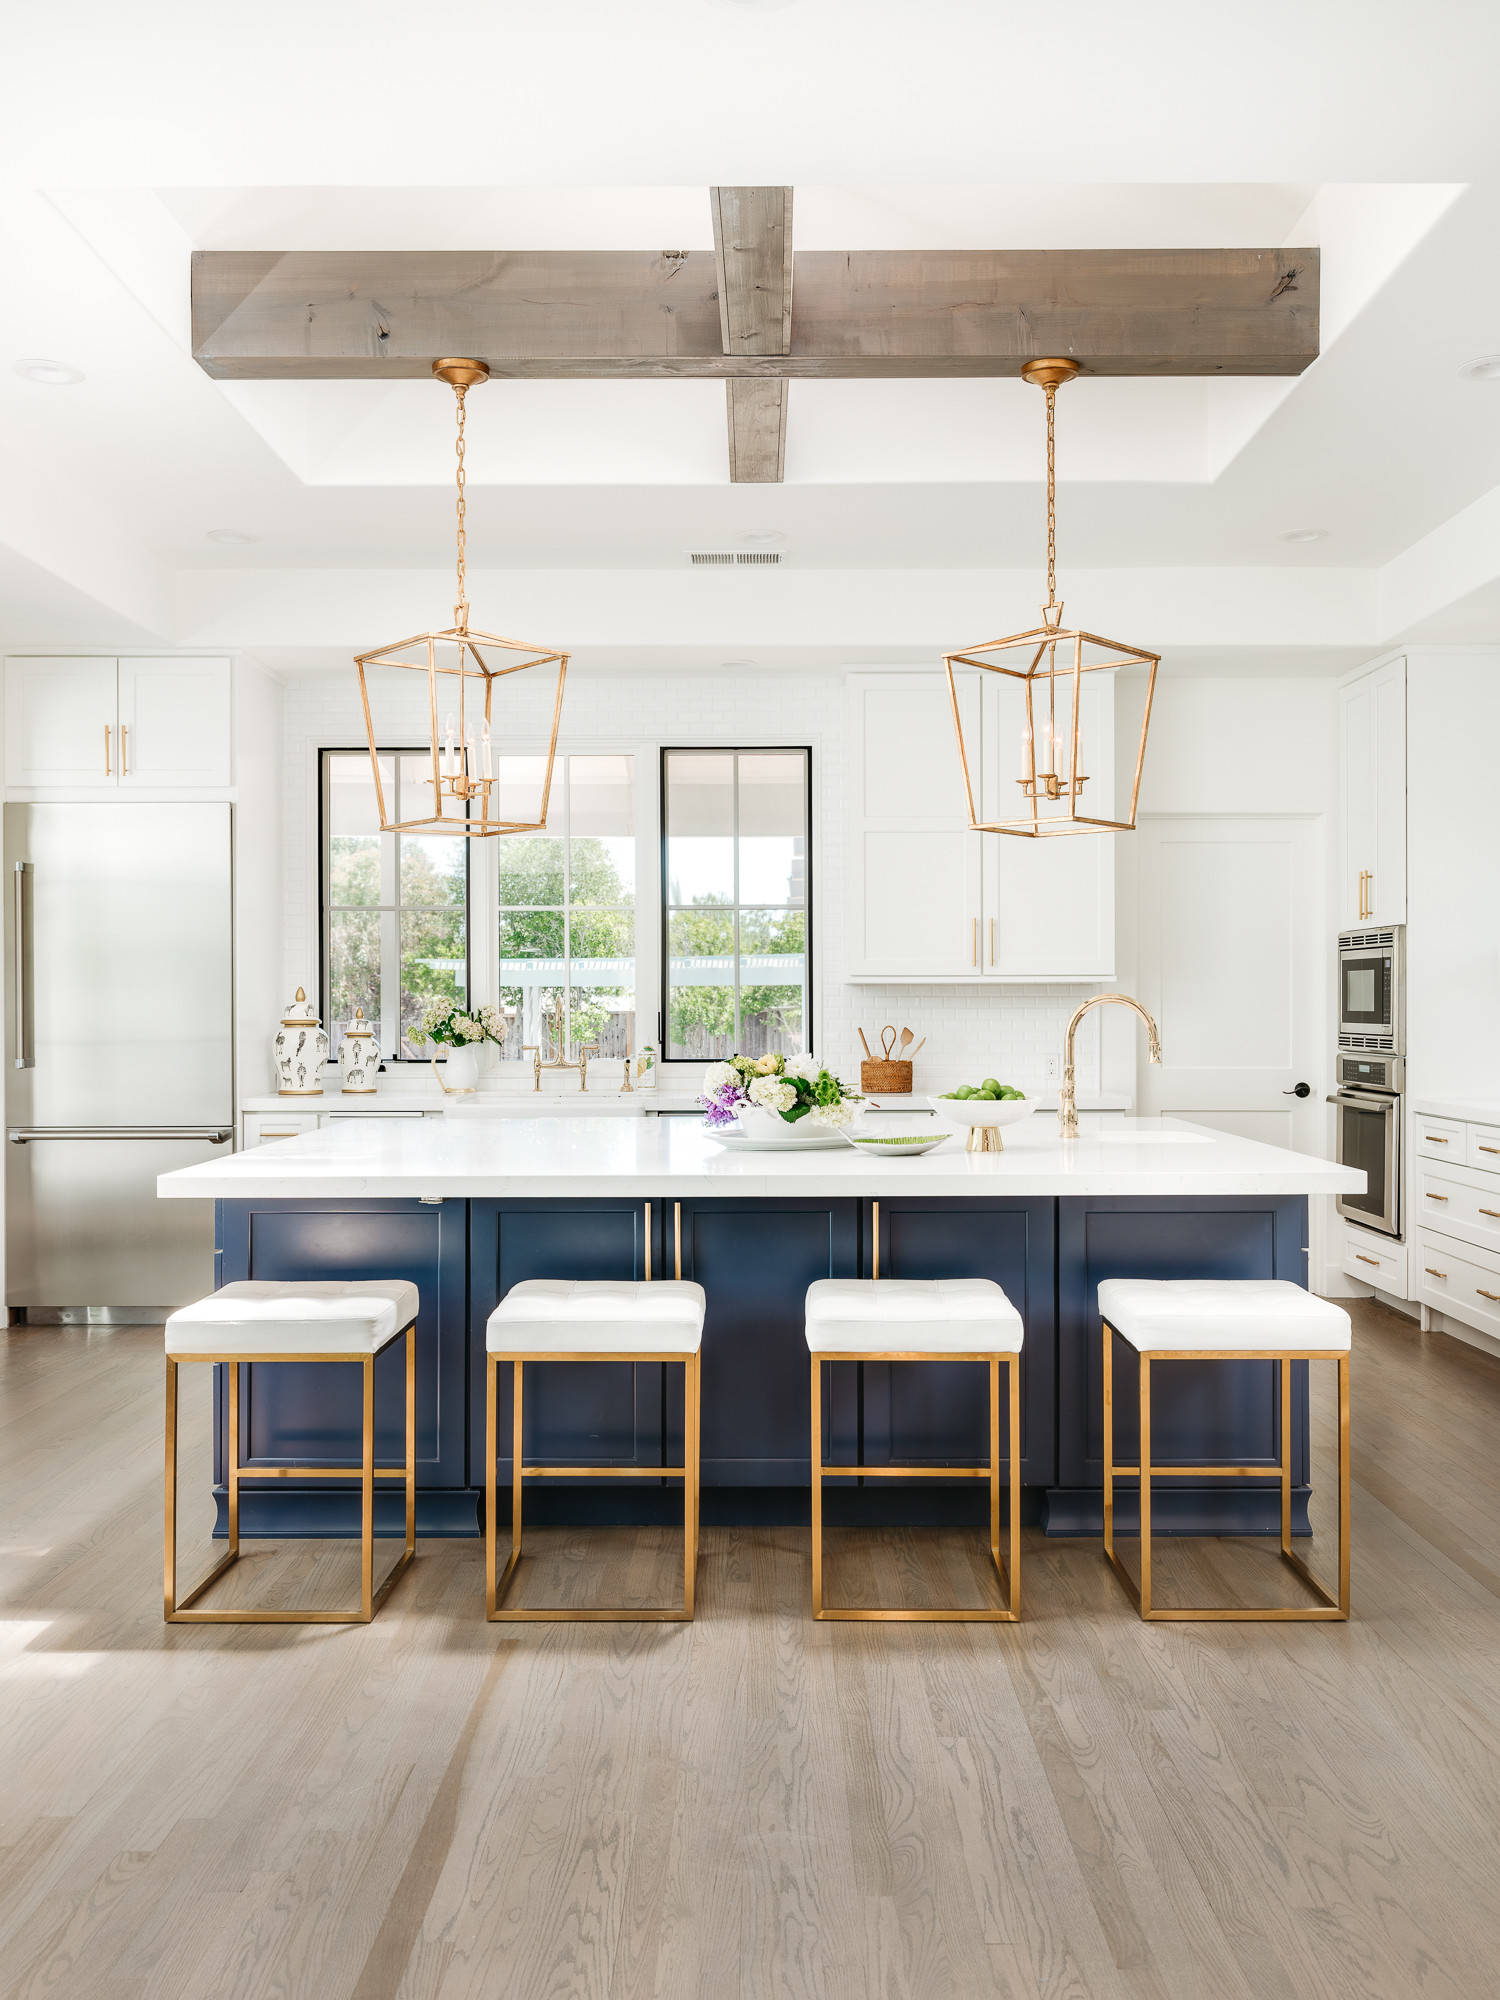 Sparkling modern kitchen with symmetry and style